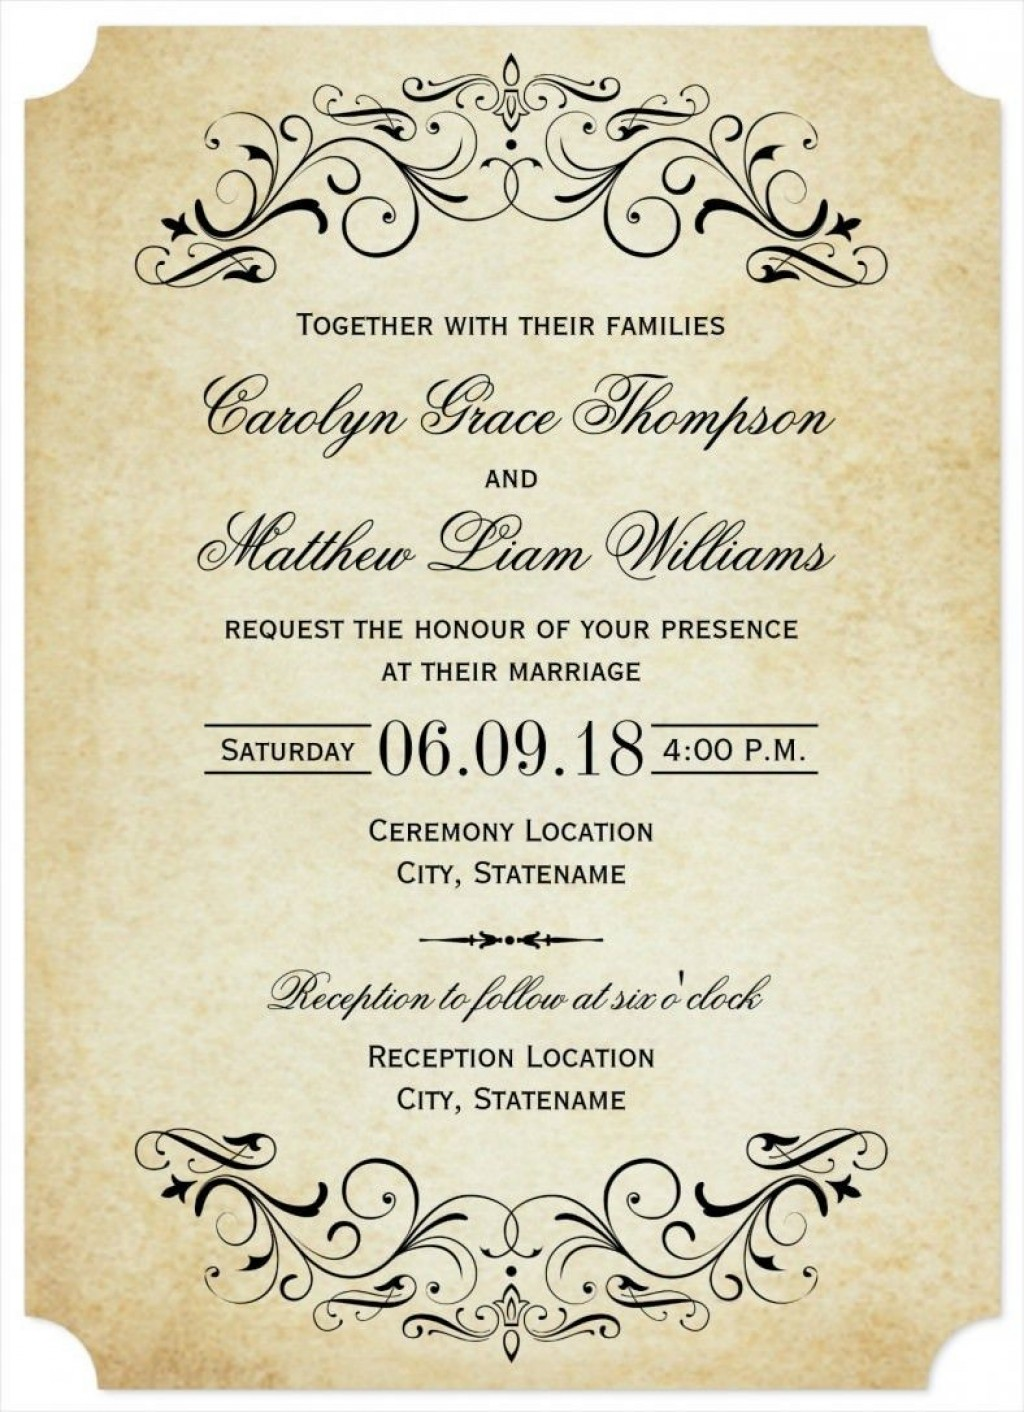 005 Exceptional Wedding Invite Wording Template Highest Clarity  Templates Chinese Invitation Microsoft Word From Bride And Groom Example InvitingLarge